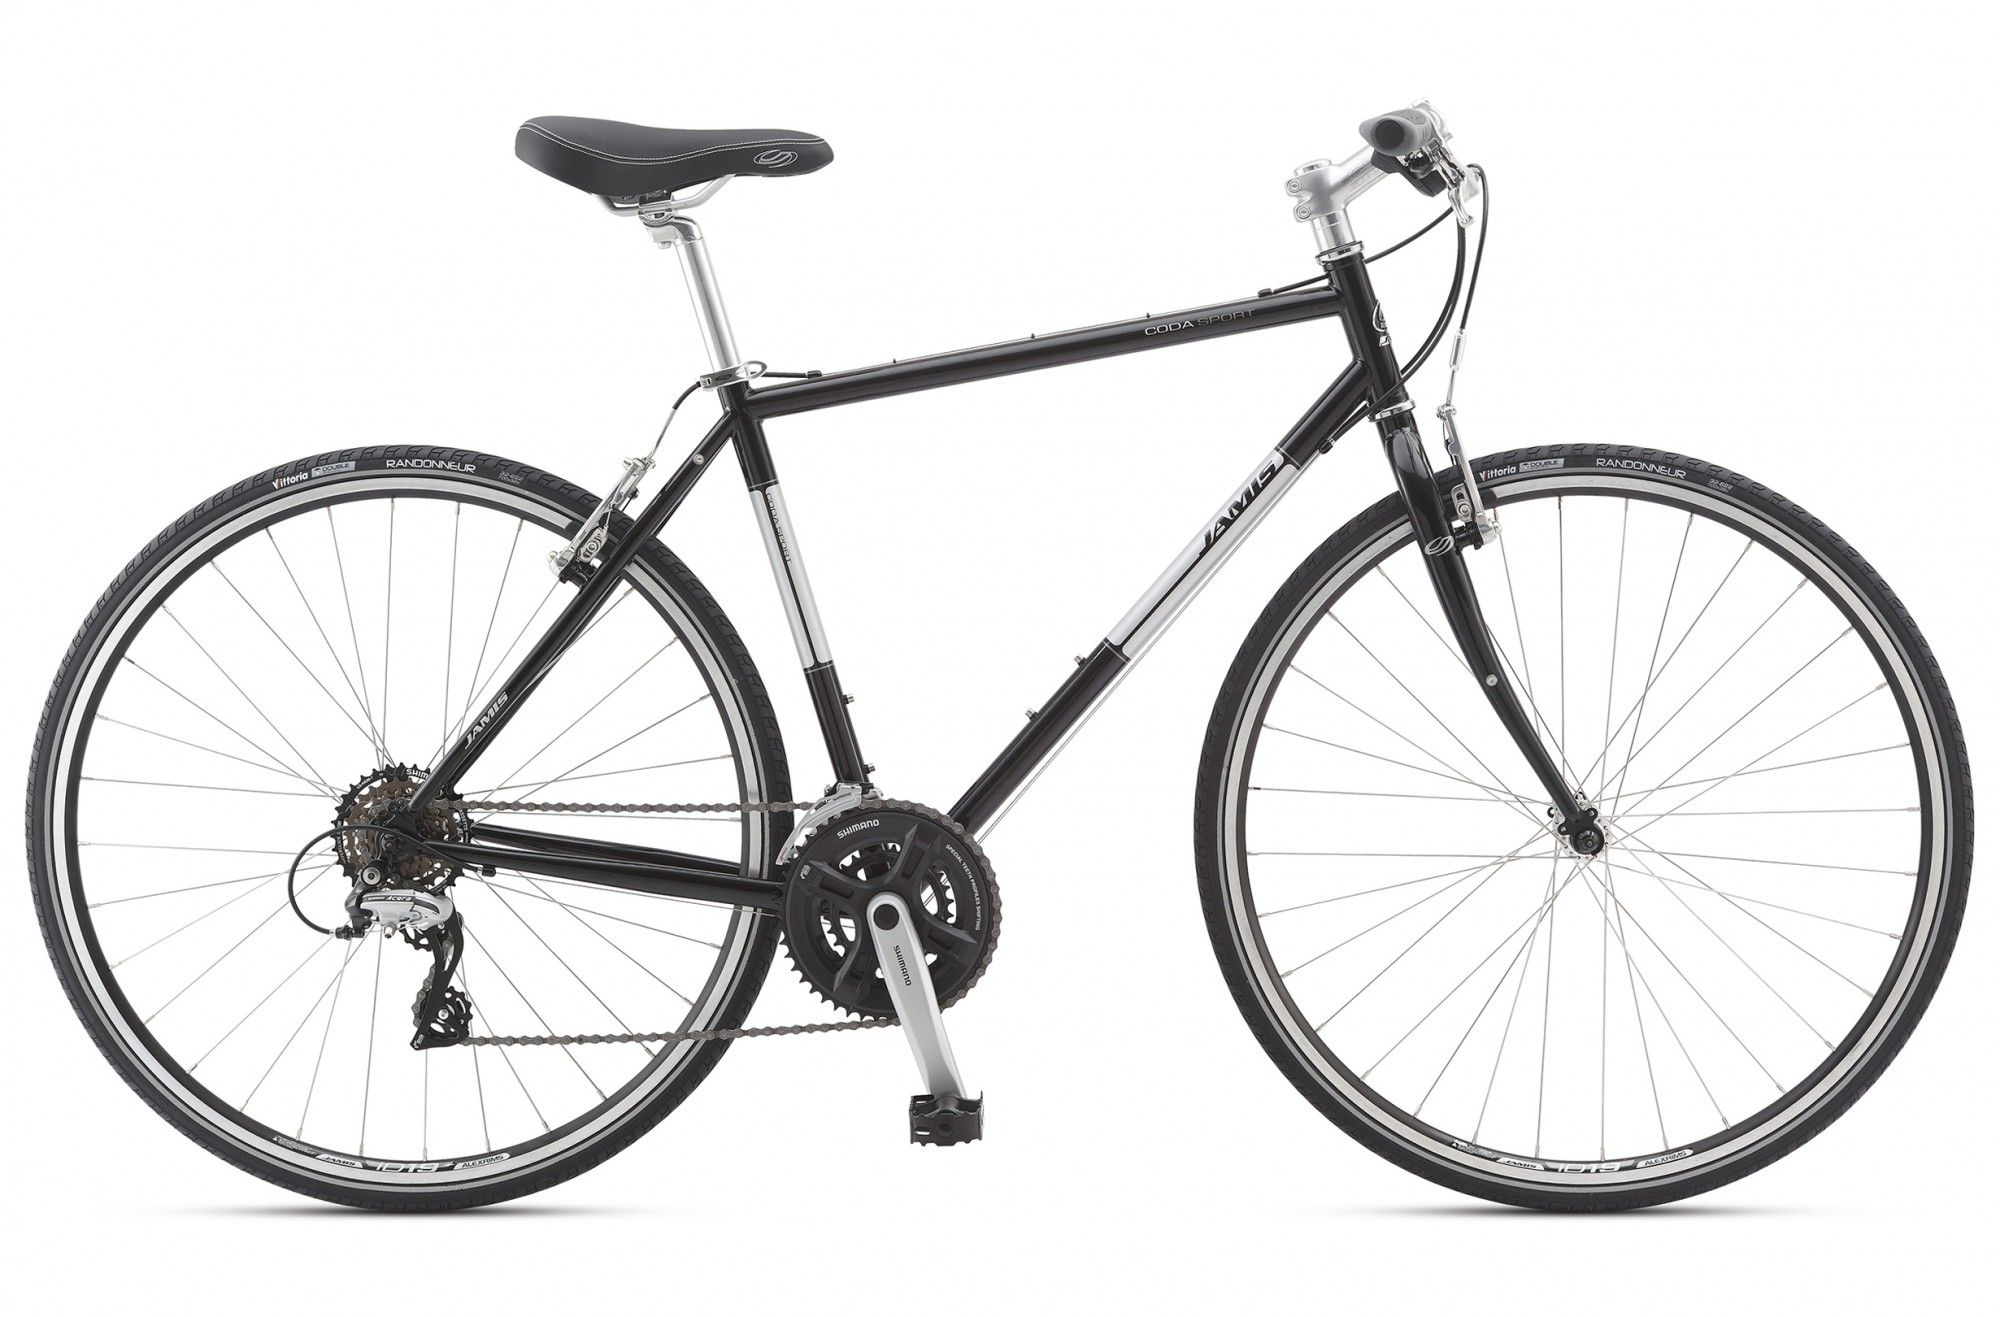 The Jamis Coda Series Is Our Favourite Budget Commuter Bike